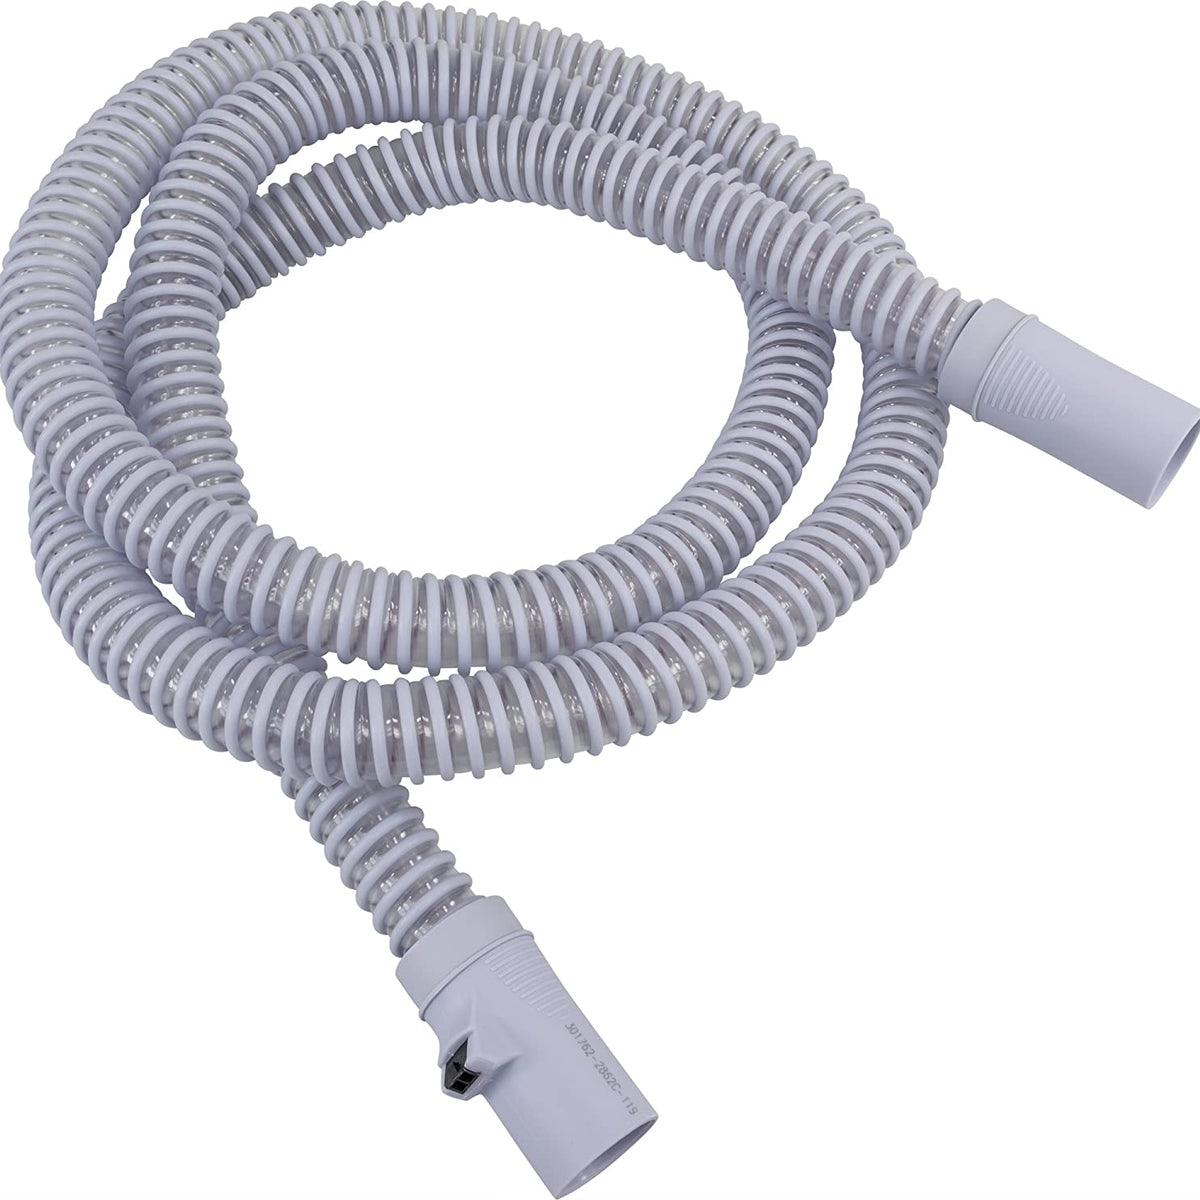 Top view of grey 3B Replacement ComfortLine Heated Tubing (Hybernite Compatible)